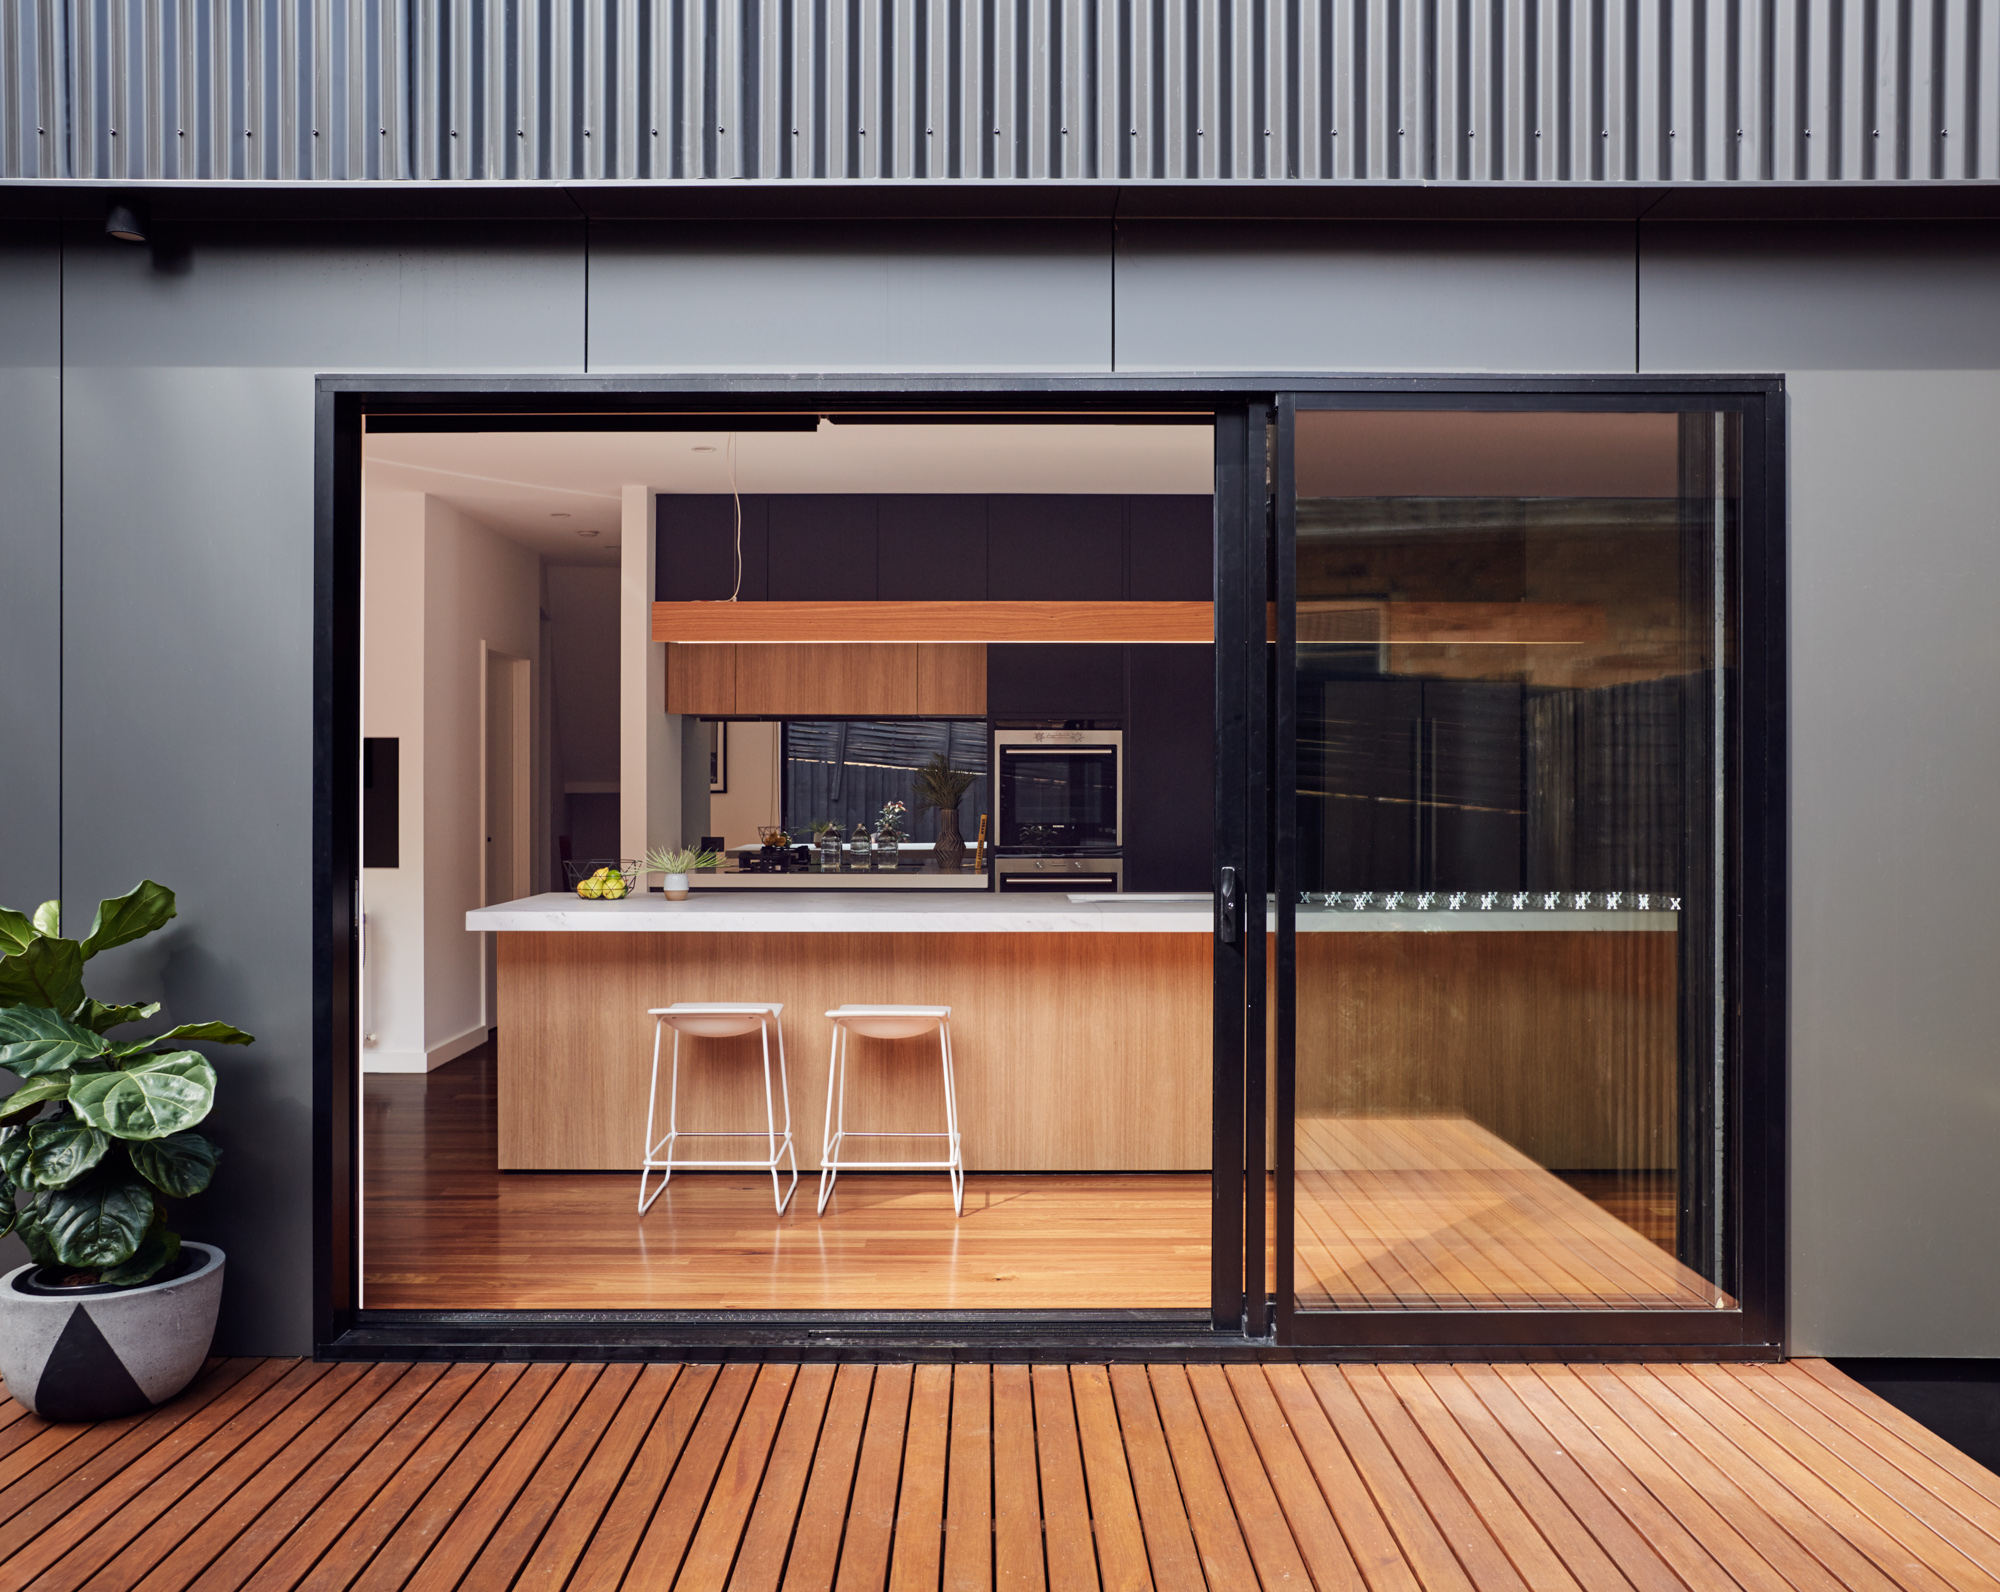 Gallery Of Blackburn House By Archiblox Local Australian Architecture & Design Blackburn, Vic Image 4